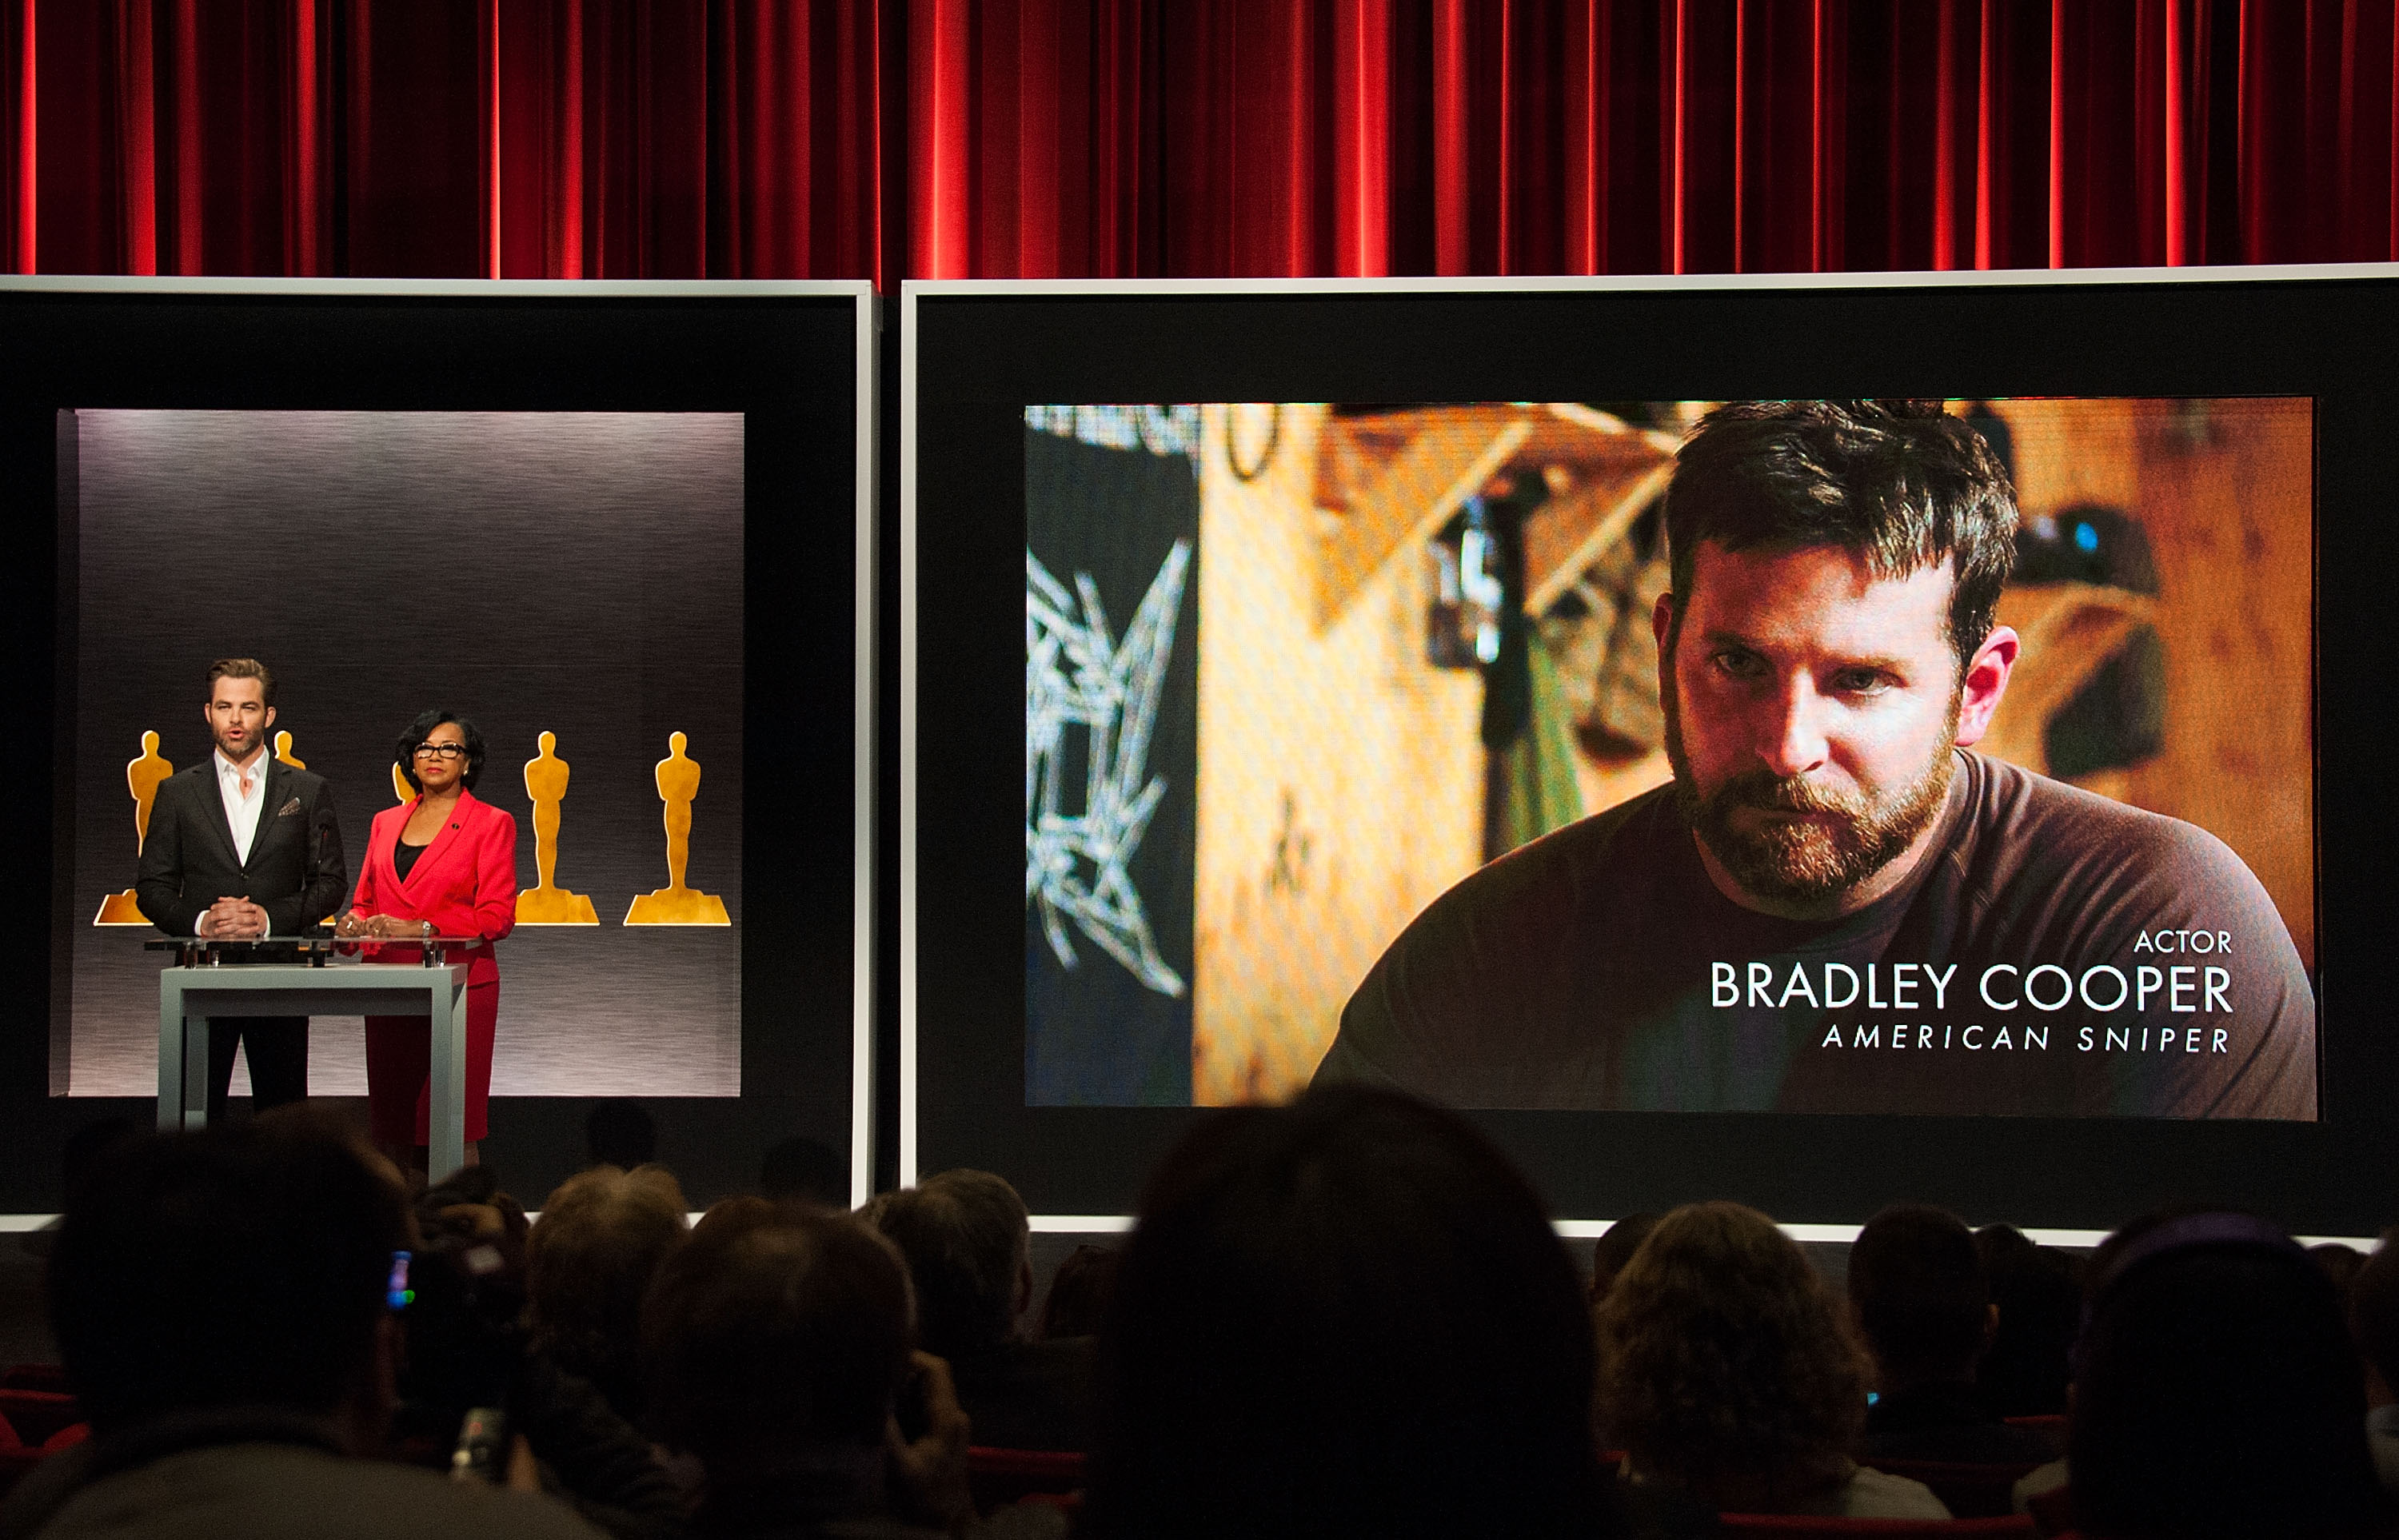 From left: Actor Chris Pine and Academy President Cheryl Boone Isaacs announce Bradley Cooper as a nominee for Best Actor in the film American Sniper at the 87th Academy Awards Nominations Announcement on Jan. 15, 2015 in Beverly Hills, California.